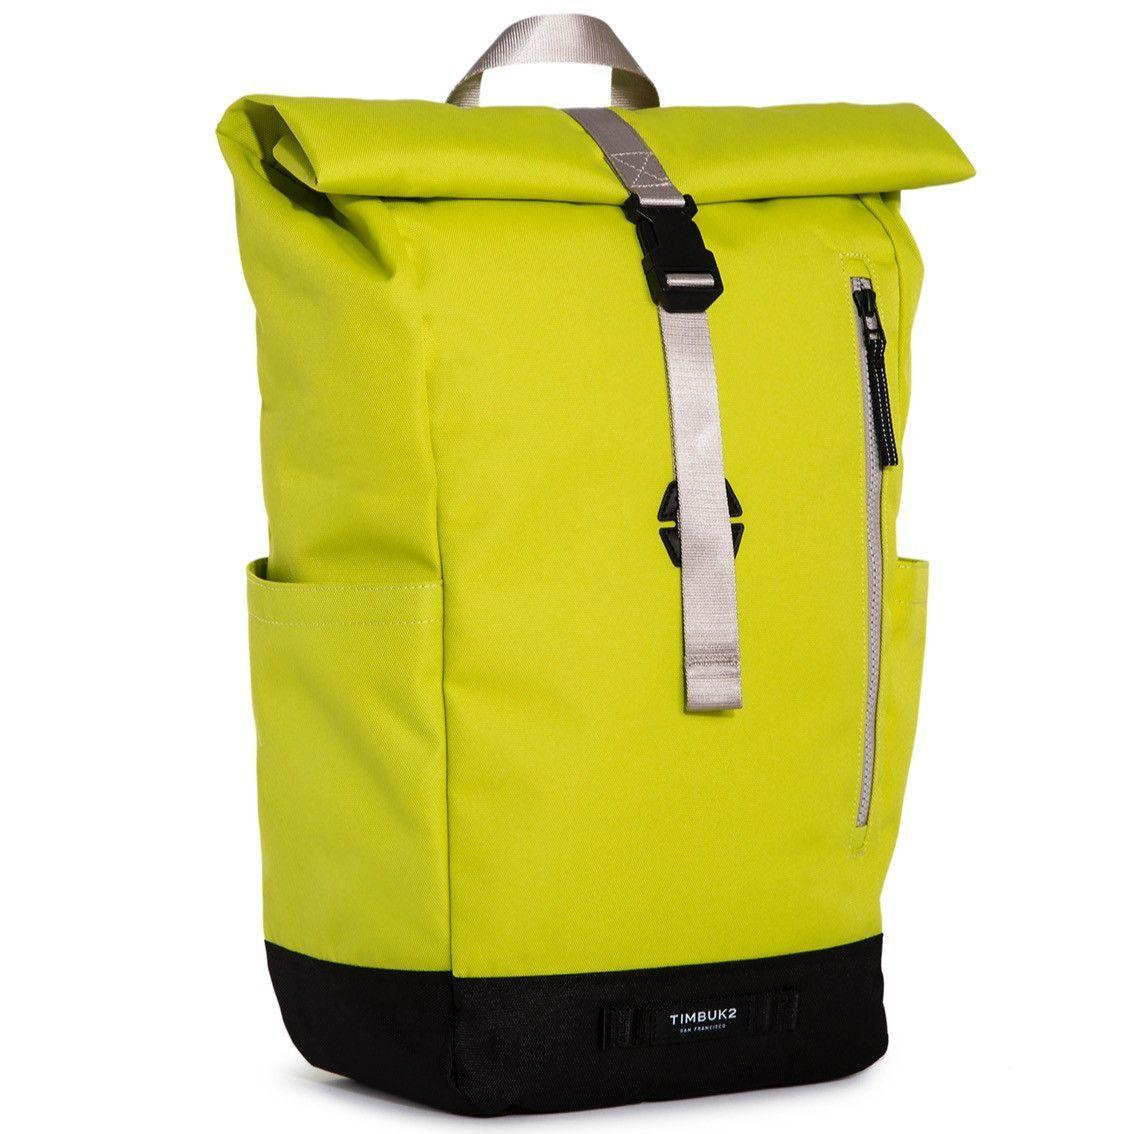 d71479c1cc Singapore. Timbuk2 Tuck Laptop Backpack Roll Top Urban Mobility Pack Travel  Business Unisex Daily Bag